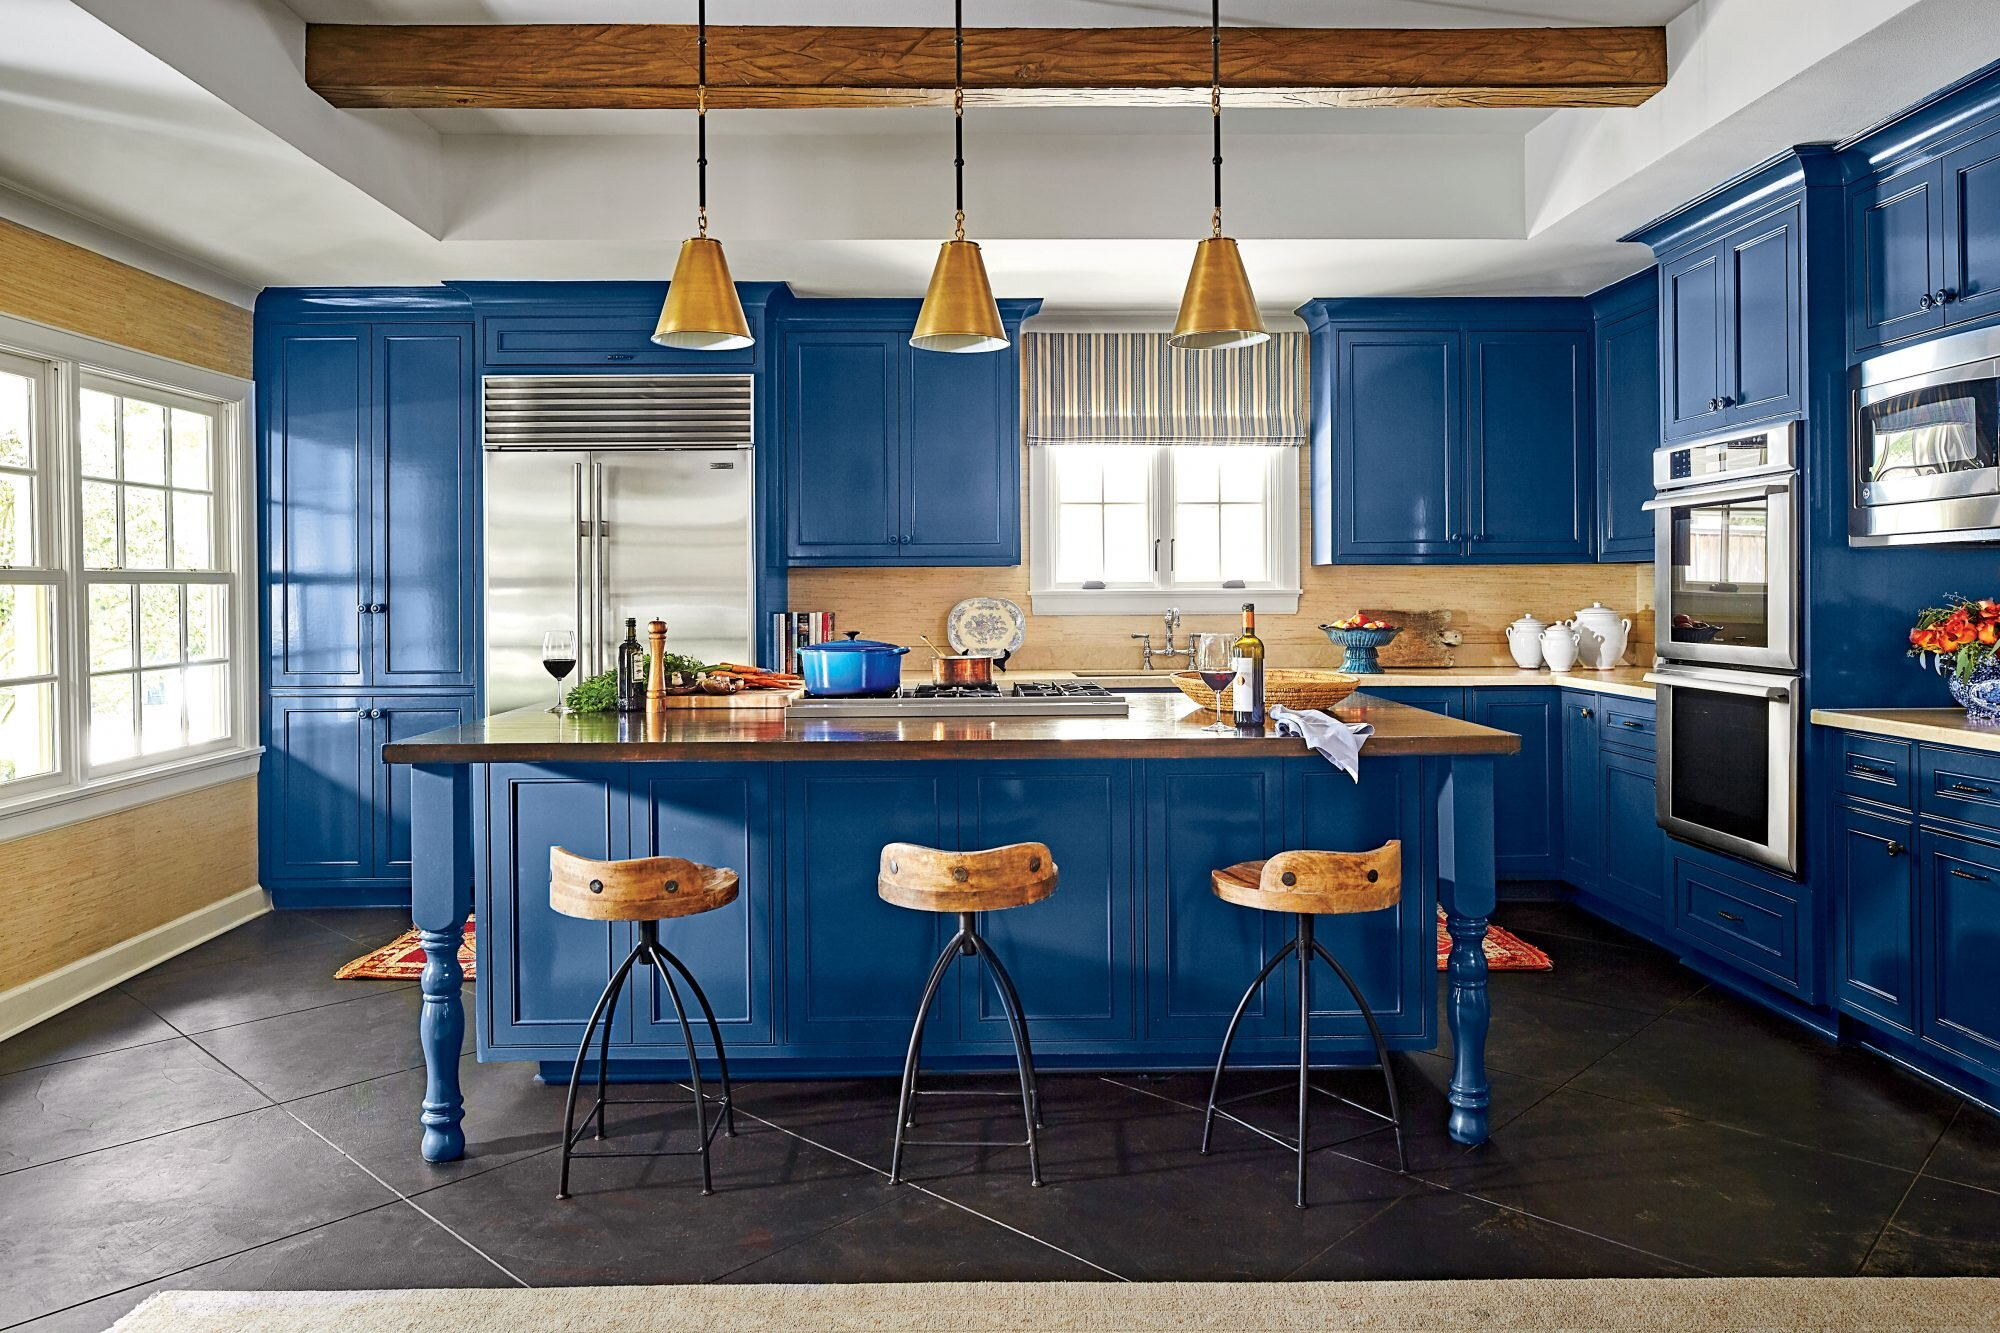 How To Clean Your Kitchen Cabinets Painted Wood Laminate